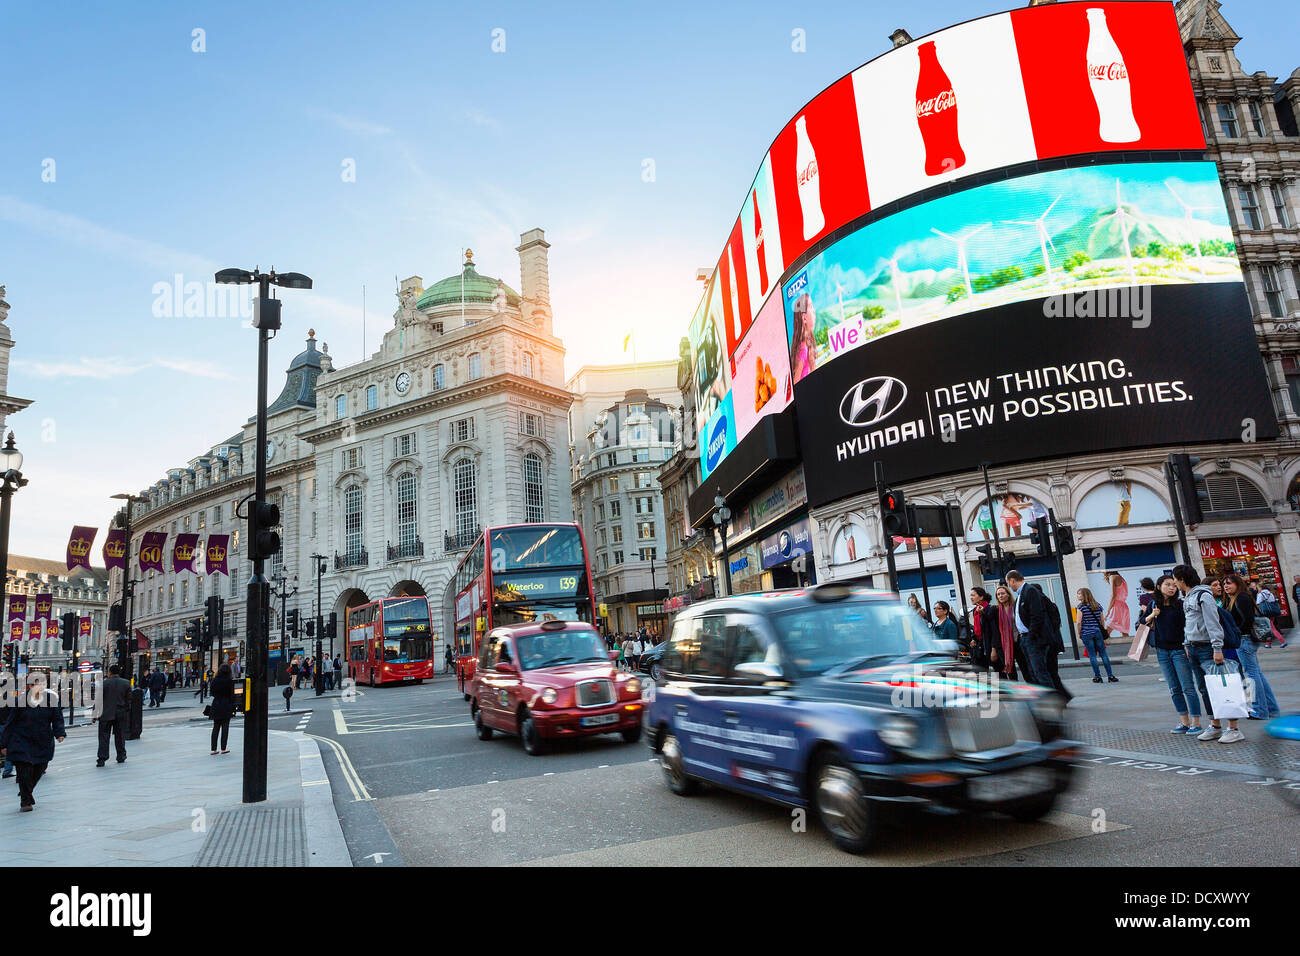 London, Piccadilly Circus Photo Stock